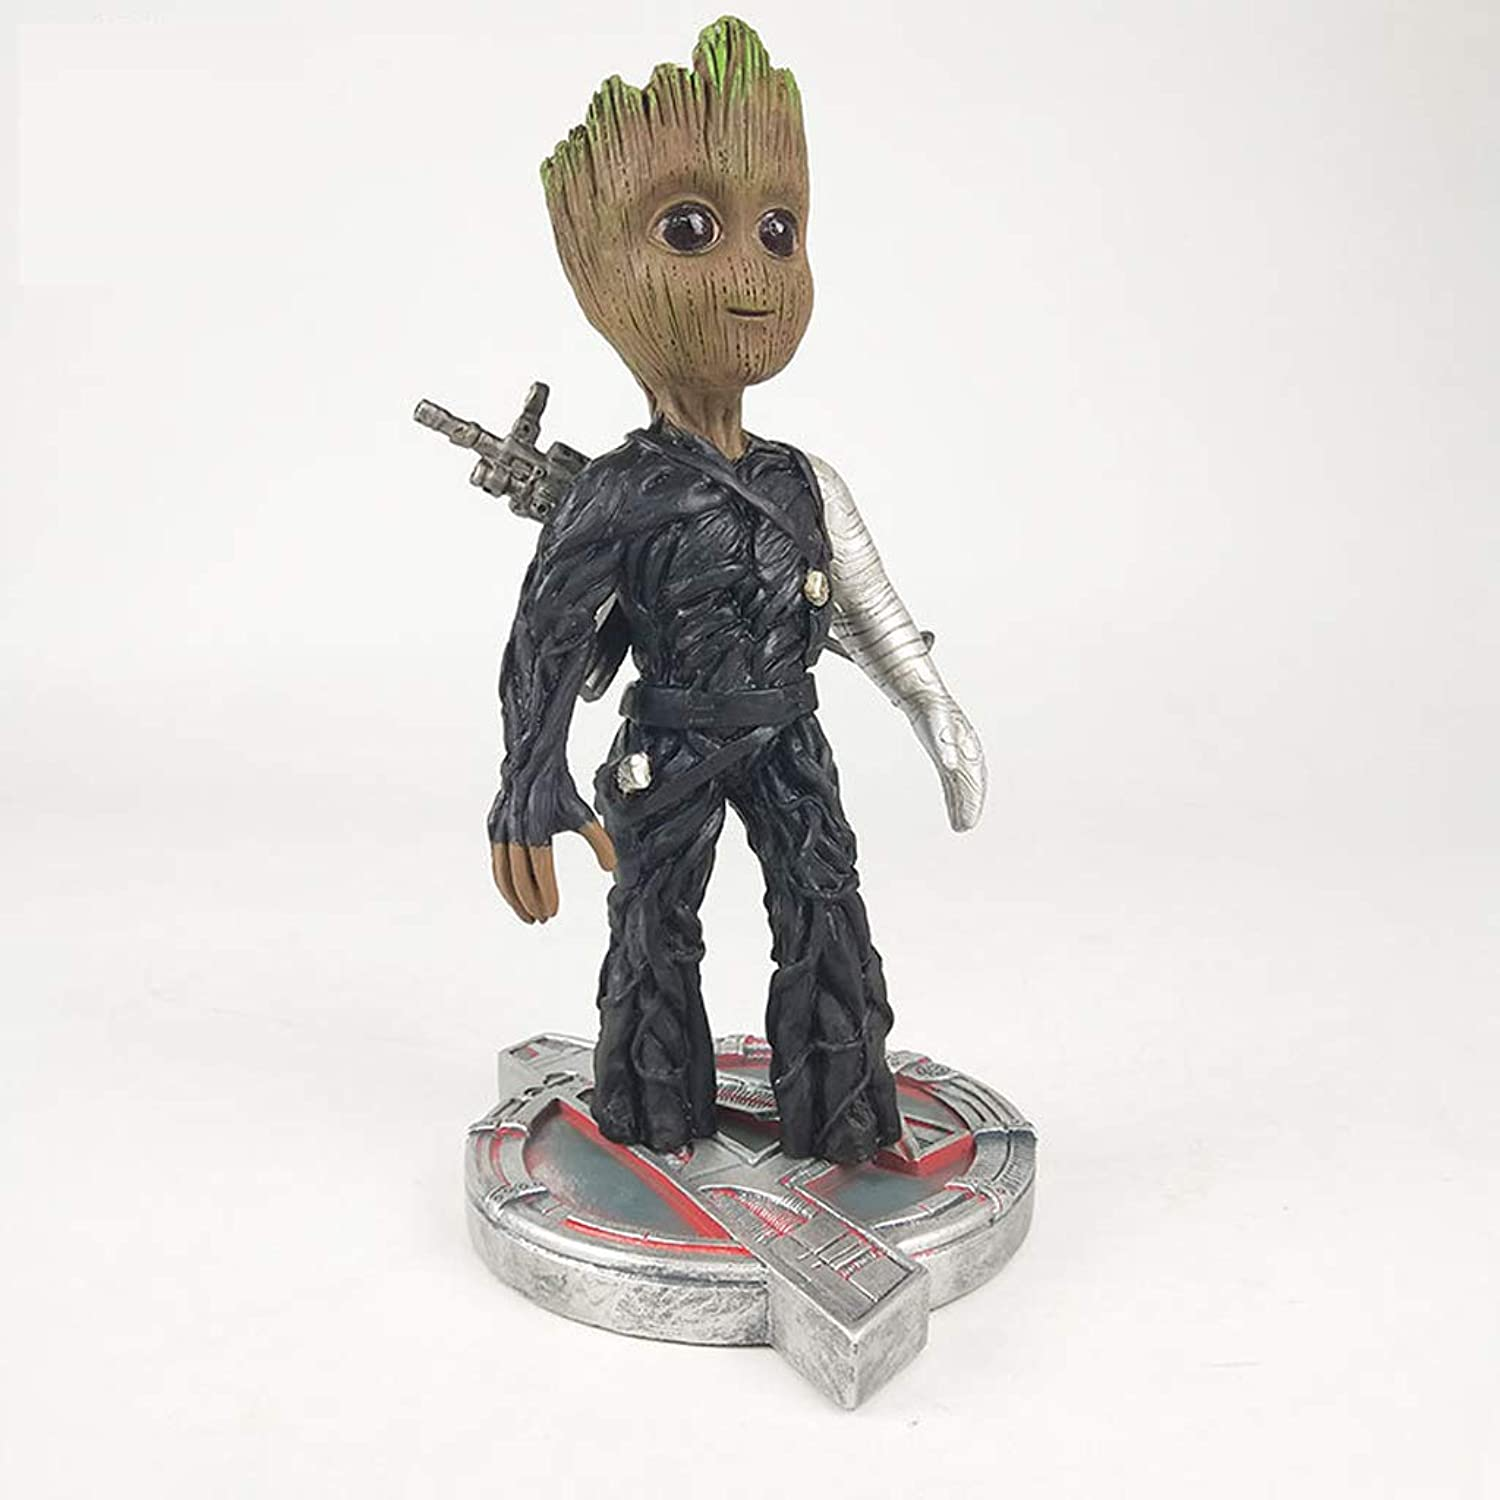 SONGDP Anime toys Galaxy Guard 2 Groot Small Tree People Change America Captain 2 Model Decoration Toy Doll Gift Collection Crafts Ornaments Sculpture 23.5cm Anime sets